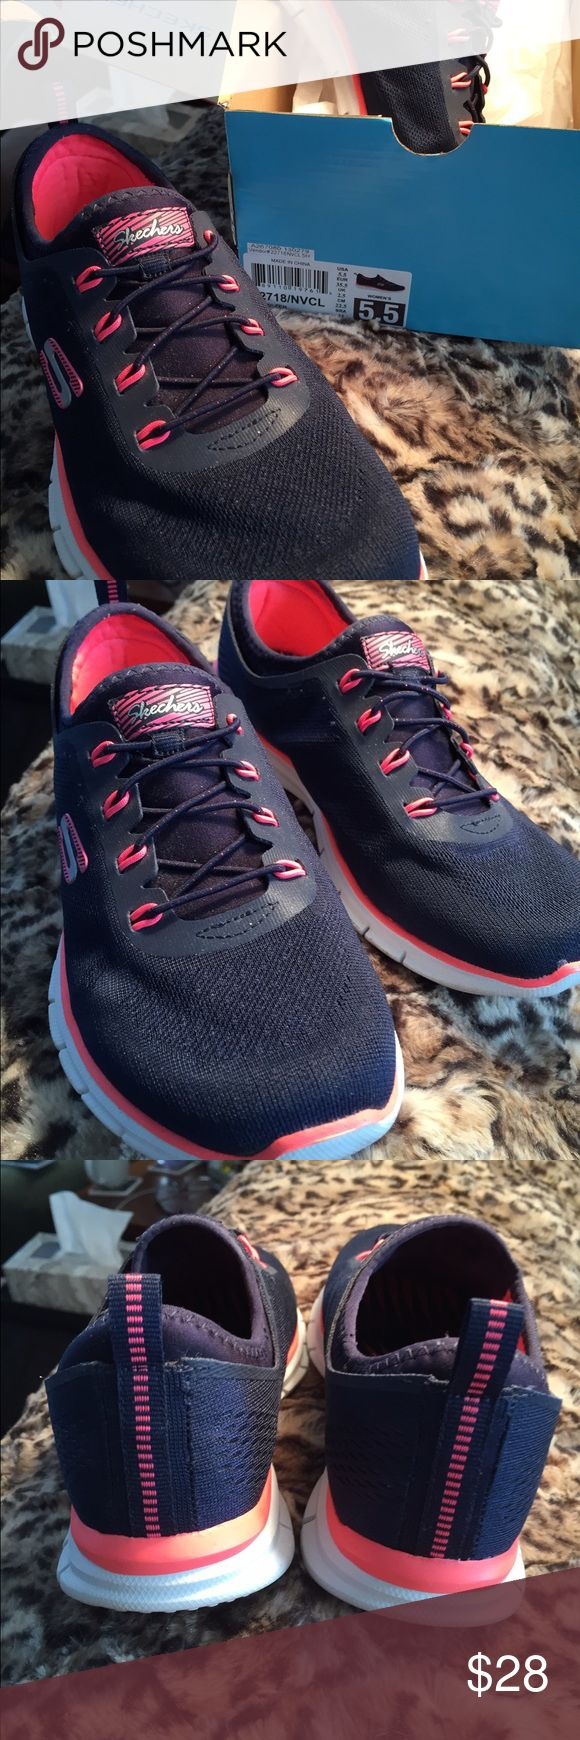 Ladies Skechers slip on sneakers Glider Zen navy/coral stretch fit memory foam sneakers very gently worn. Skechers Shoes Athletic Shoes